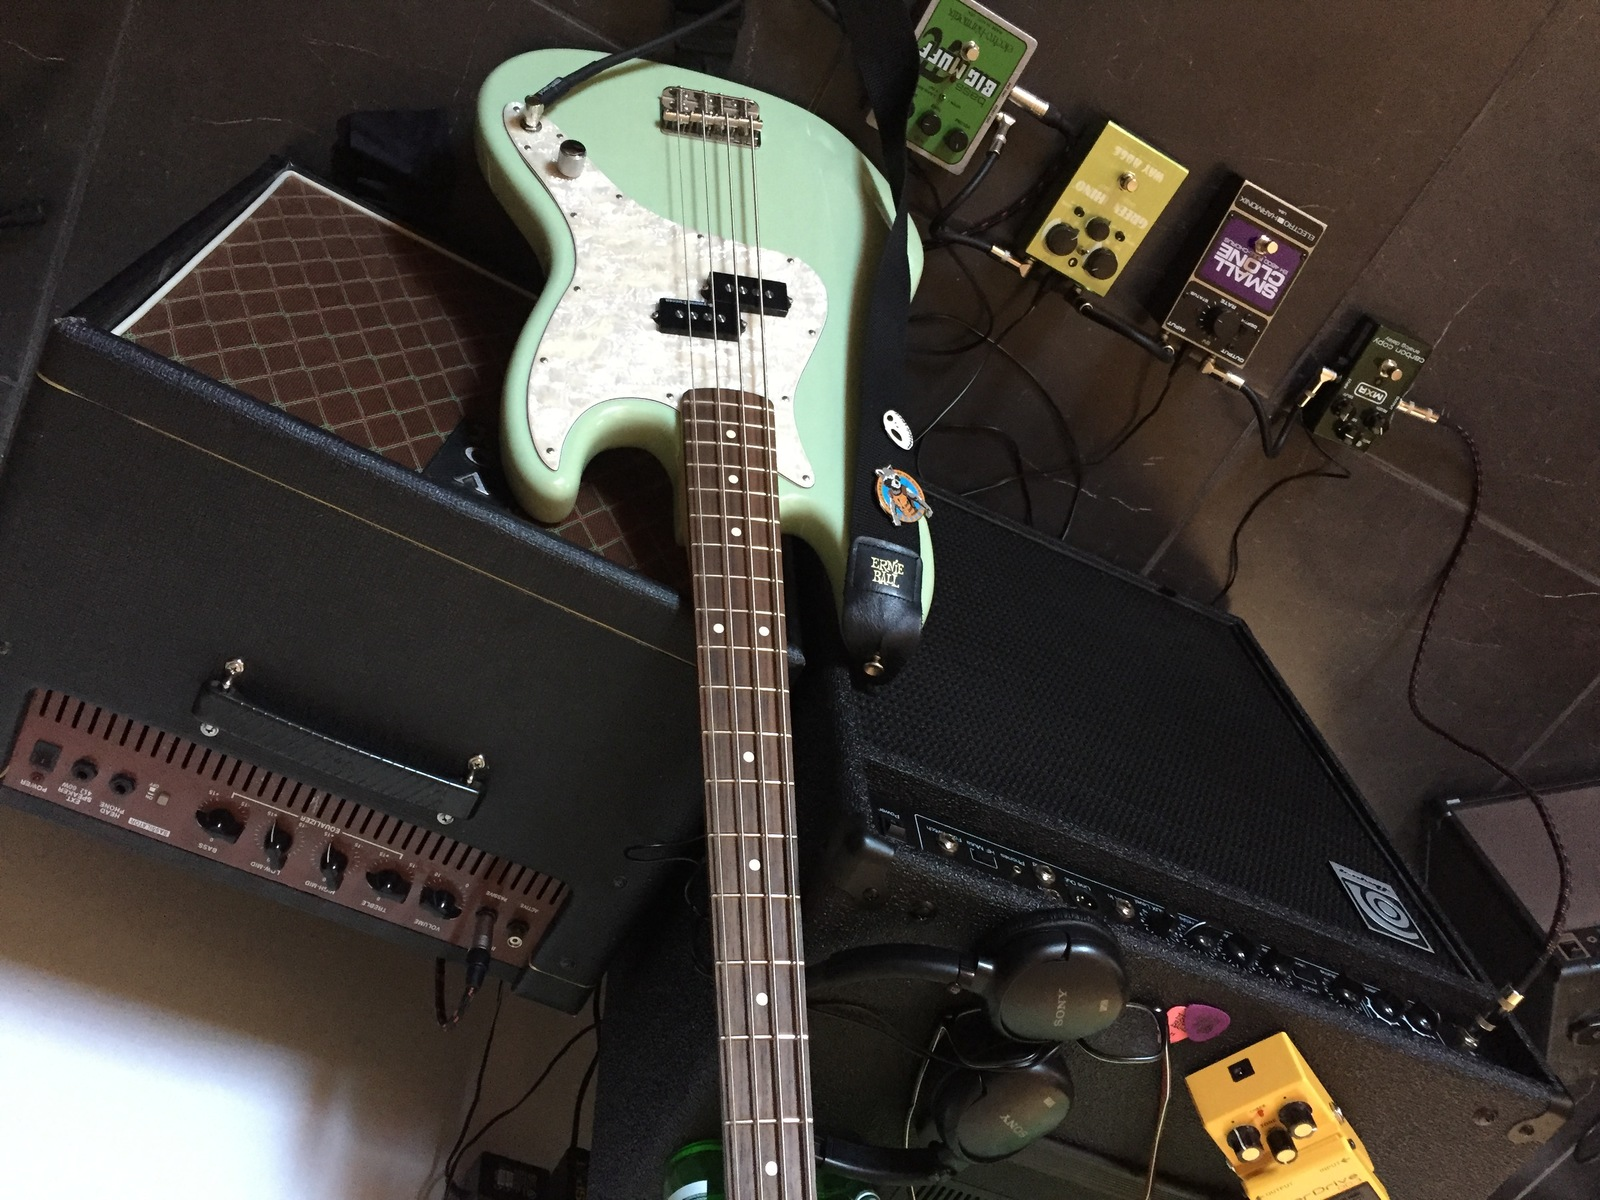 Photo of Electro-Harmonix EH-4600 Small Clone and more gear